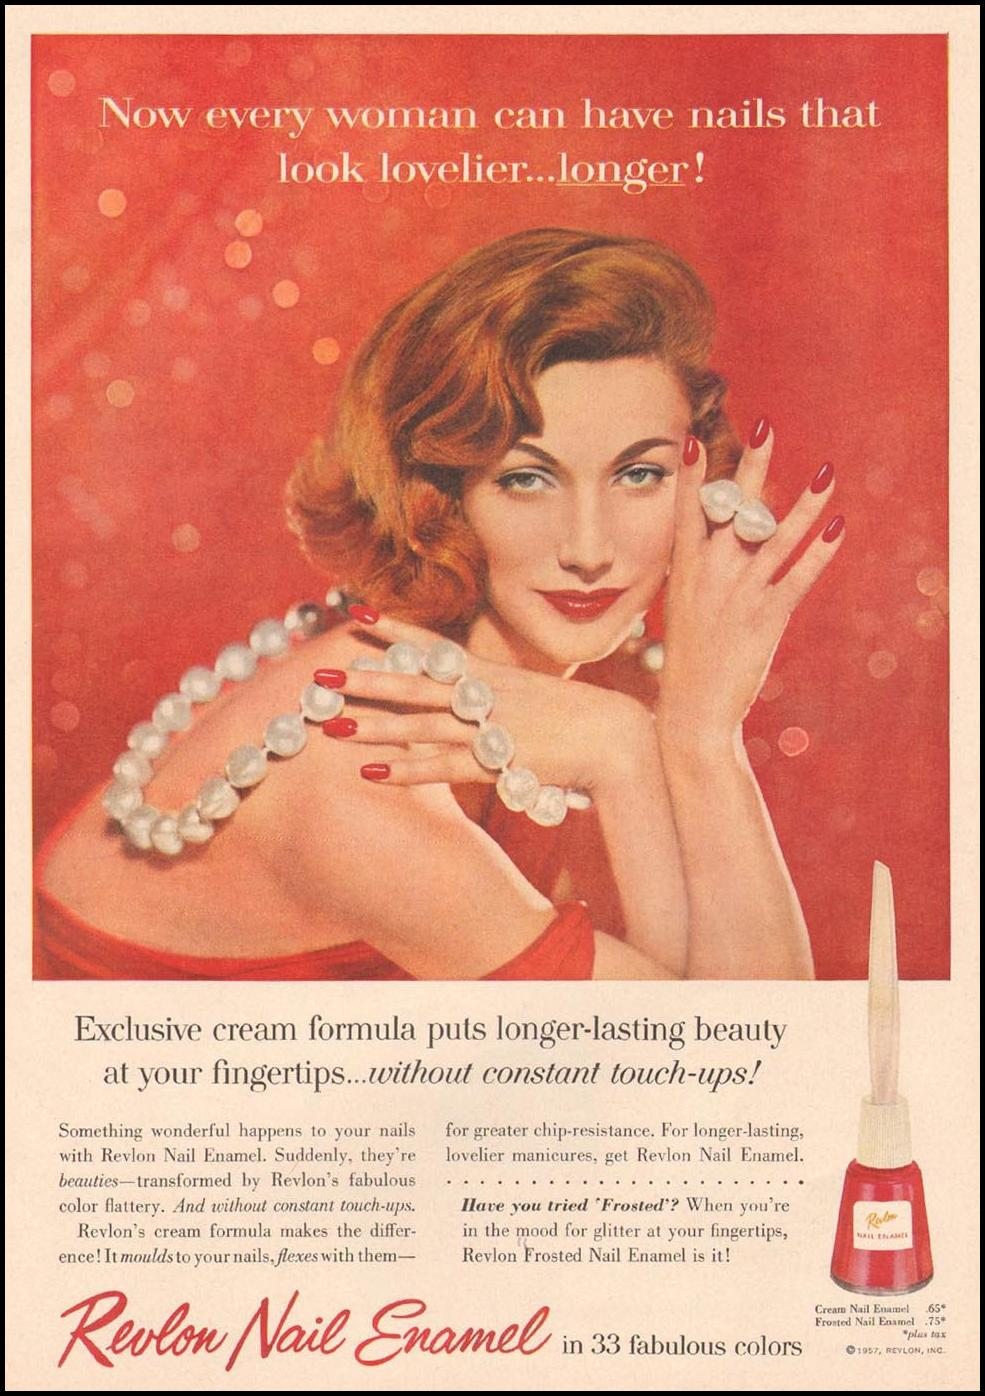 REVLON NAIL ENAMEL GOOD HOUSEKEEPING 05/01/1957 p. 25